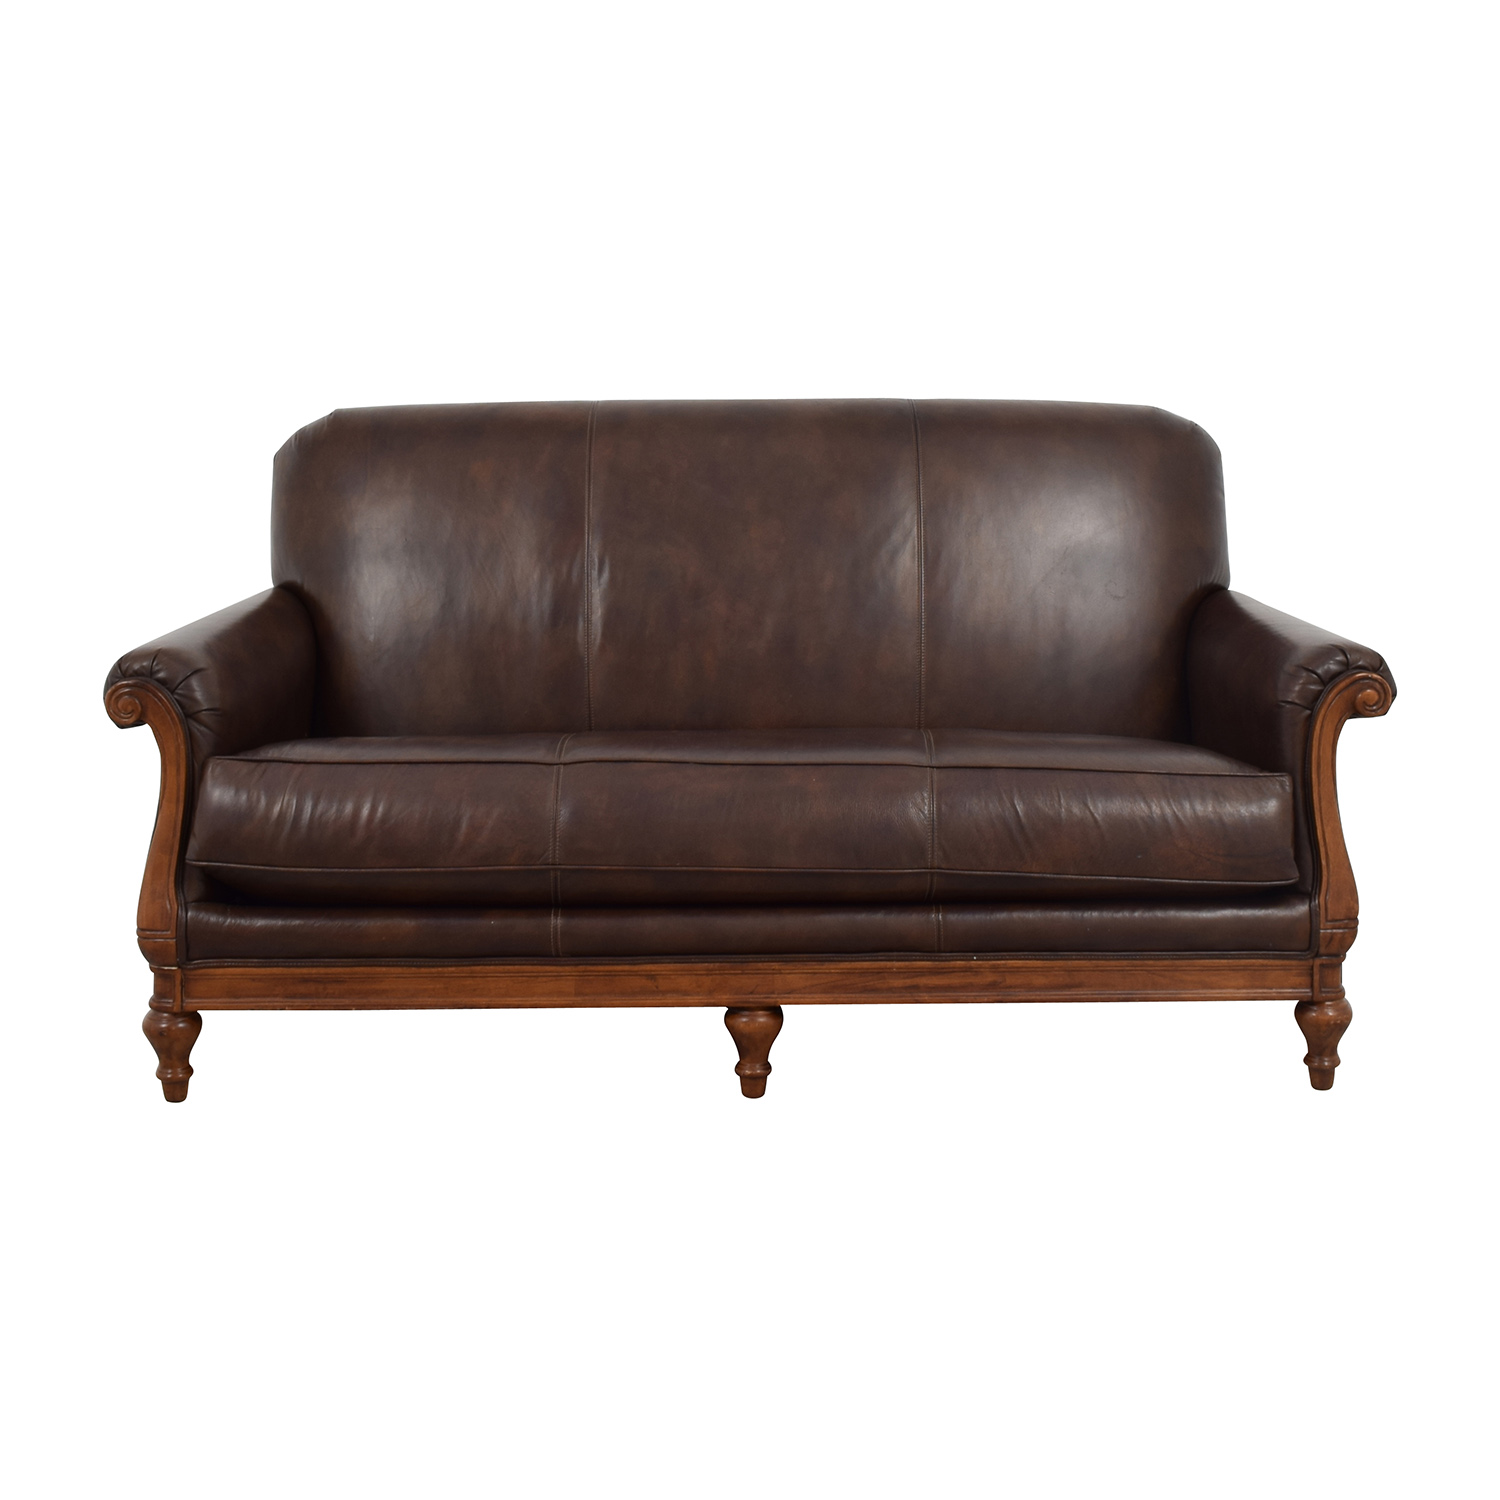 73 Off Thomasville Thomasville Mid Century Leather Sofa Sofas ~ Tan Leather Mid Century Sofa